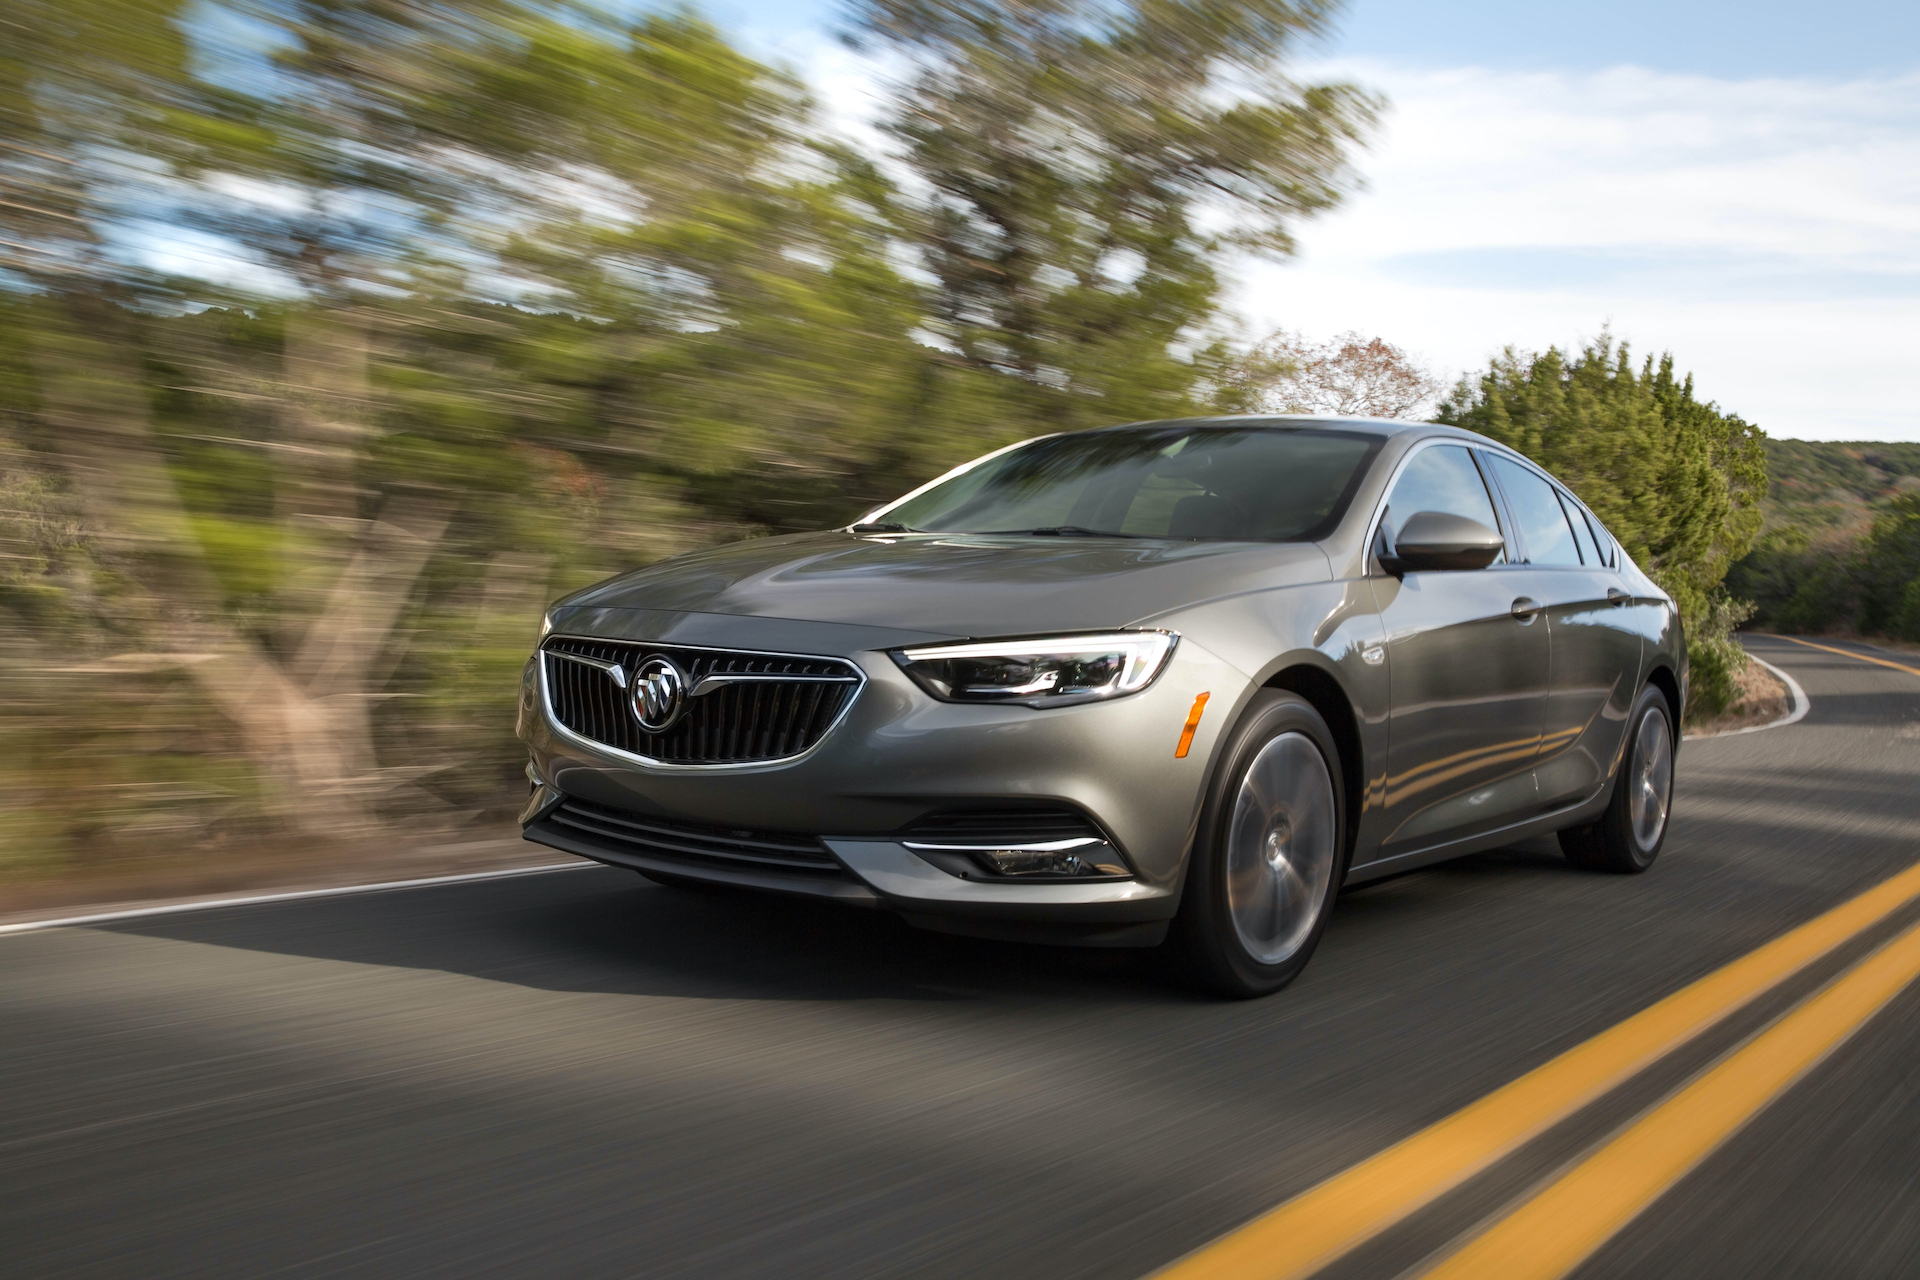 Buick Regal Won't Return For 2021 New 2021 Buick Regal Interior, Inventory, Images